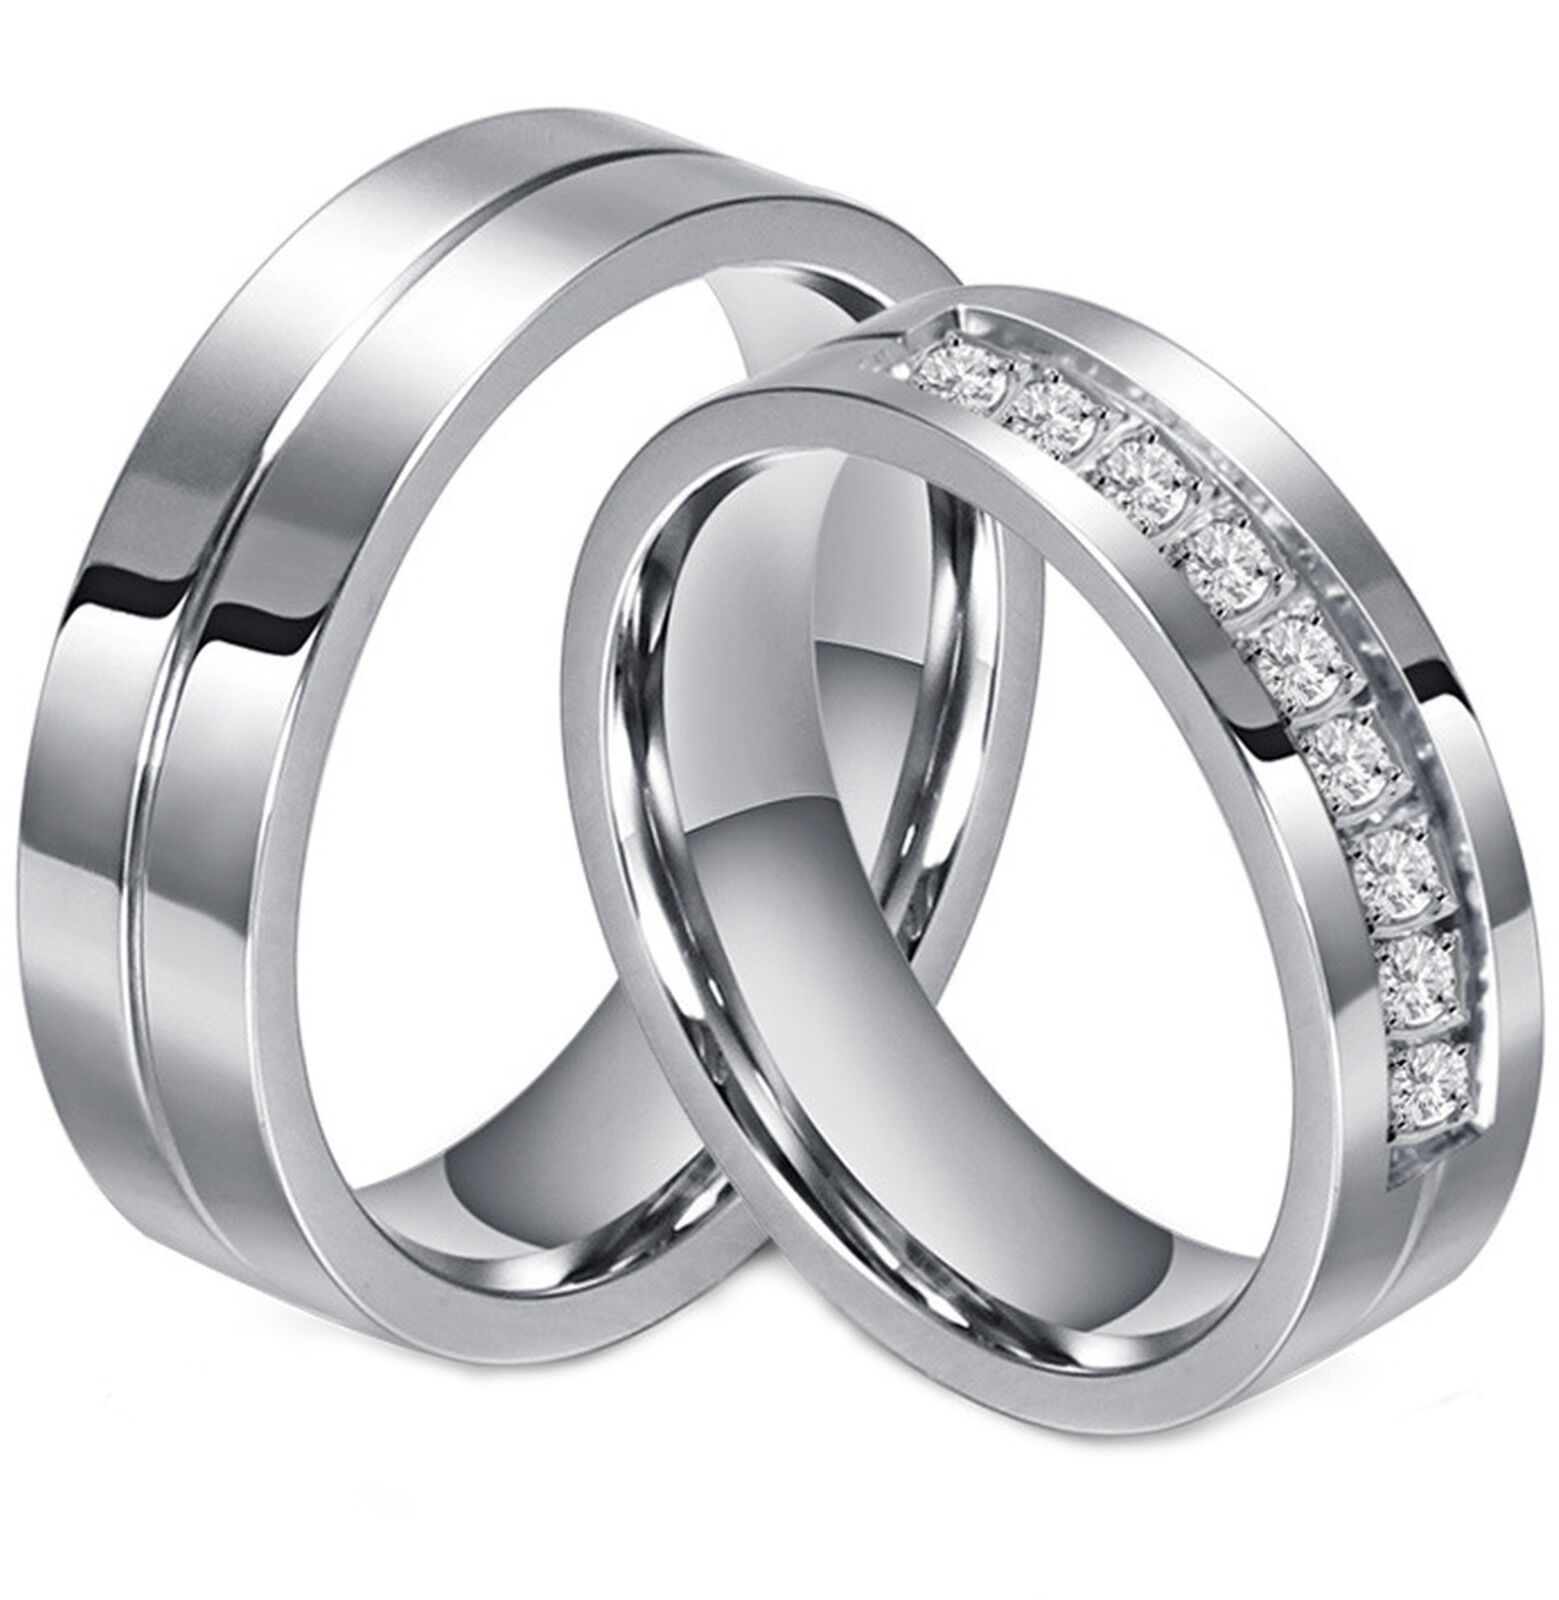 Couple's Matching Ring His or Hers Stainless Steel Comfort Fit Wedding Band Fashion Jewelry